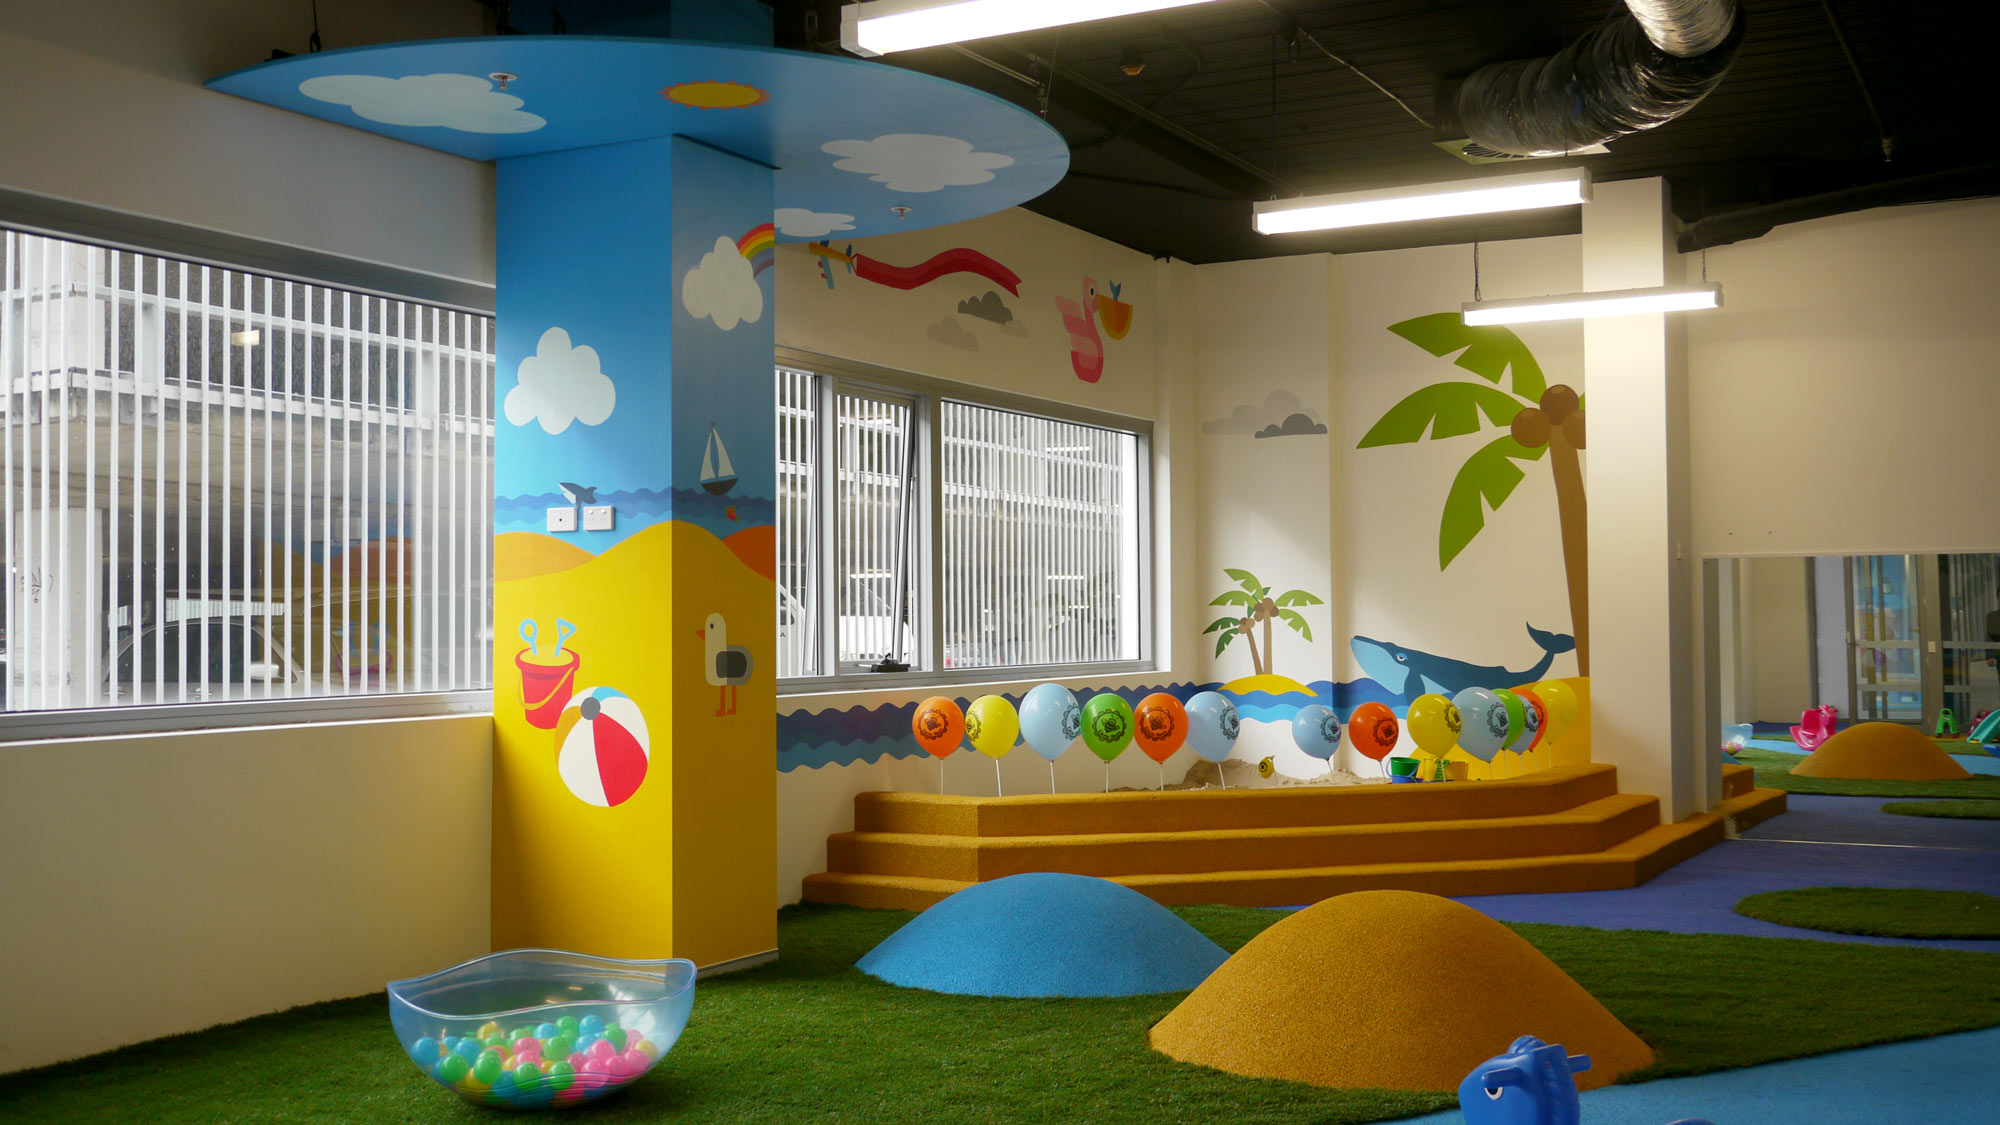 the-art-of-wall-child-care-center-mural-beach-room2